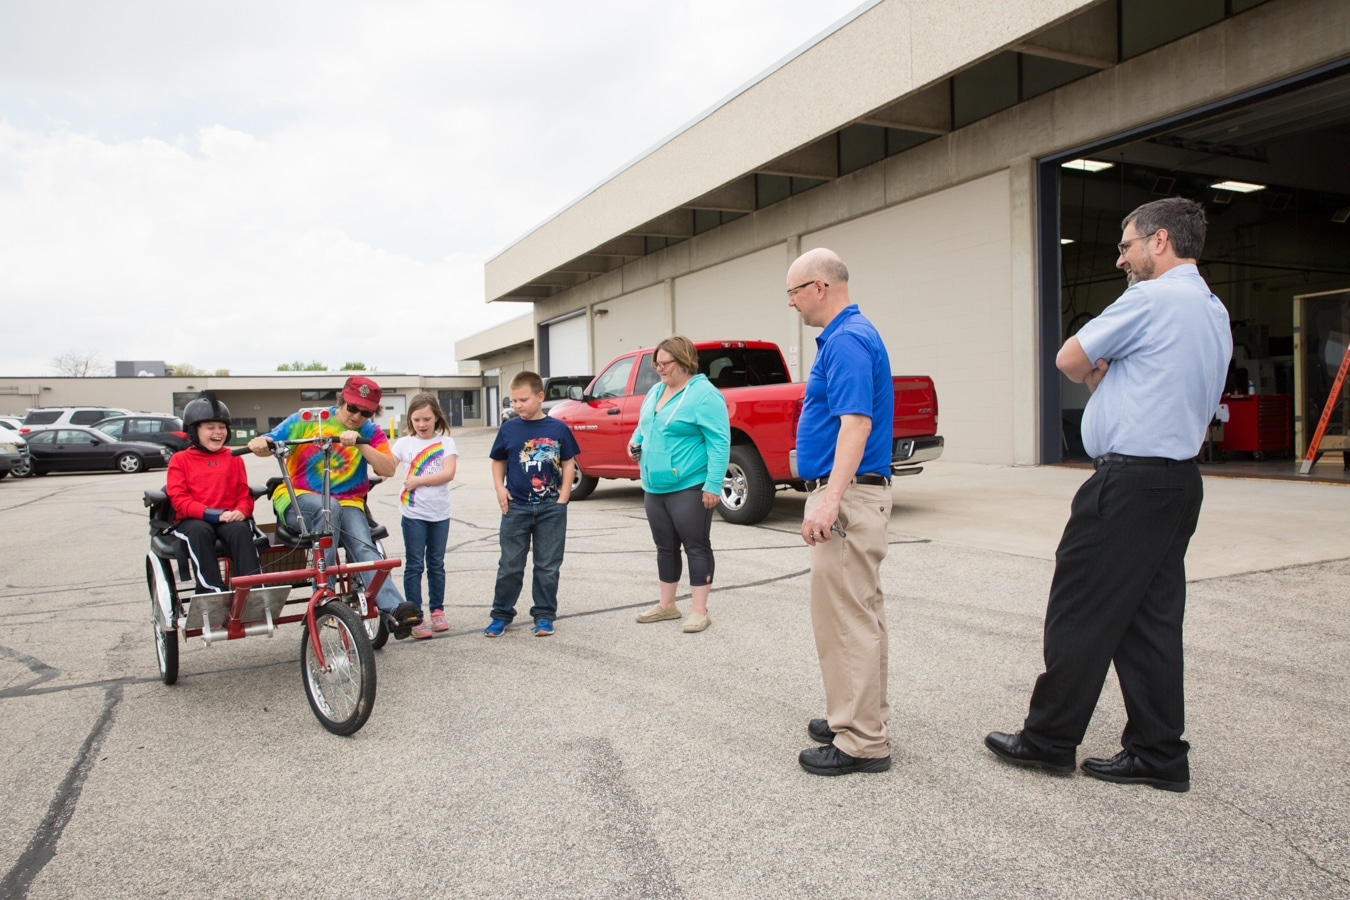 Mason on trike with instructor and other children onlooking